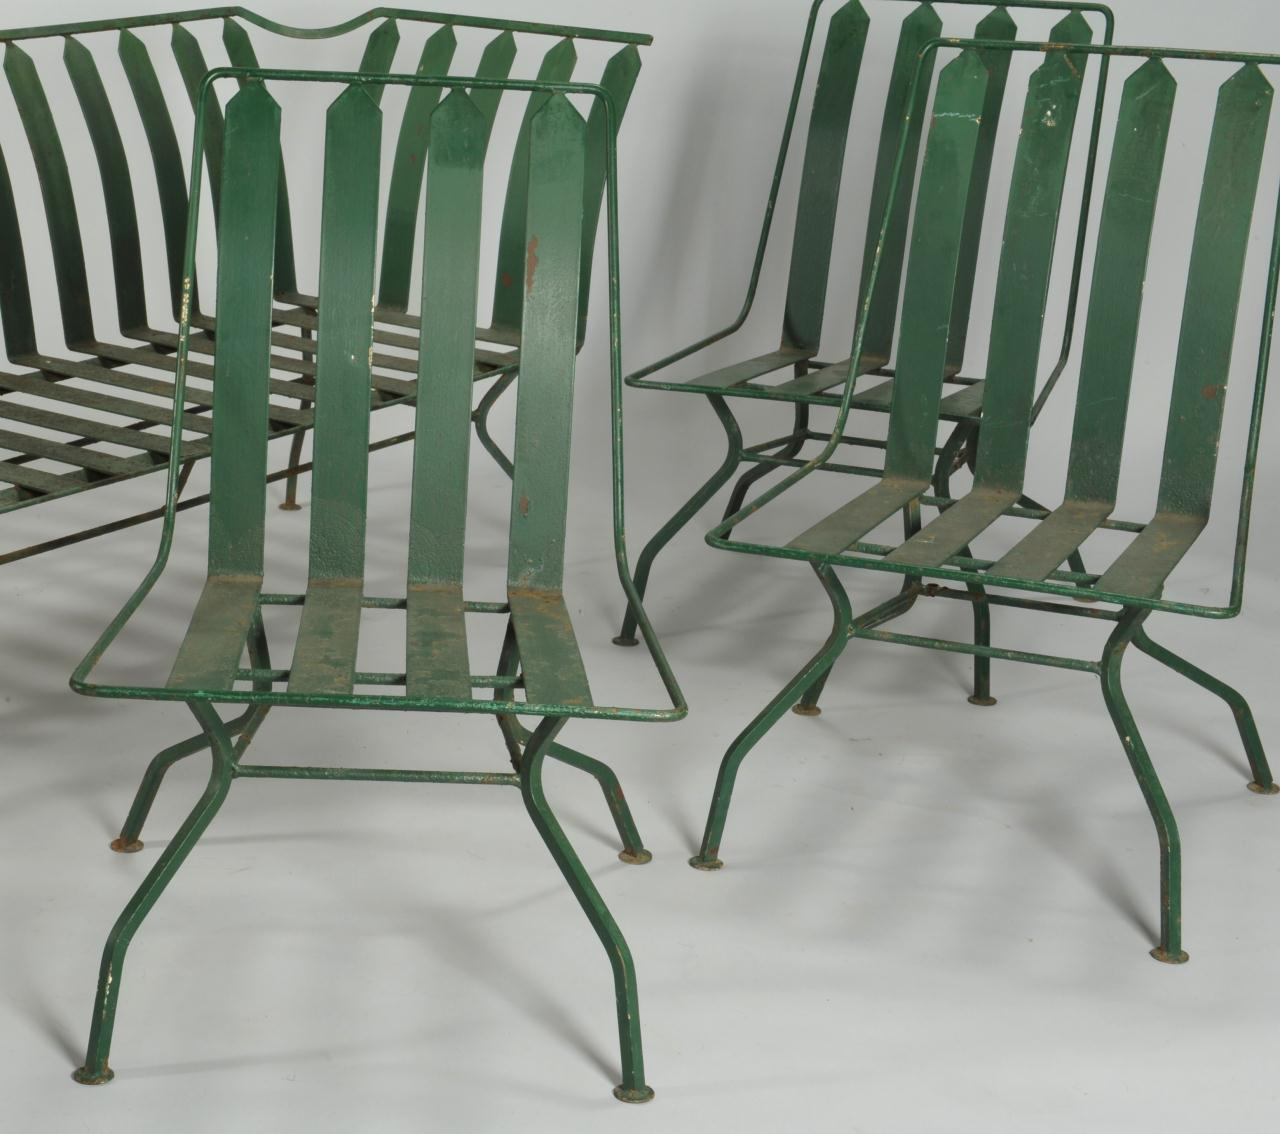 green french bistro chairs rocking chair gliders lot 589 art deco patio furniture settee and 3